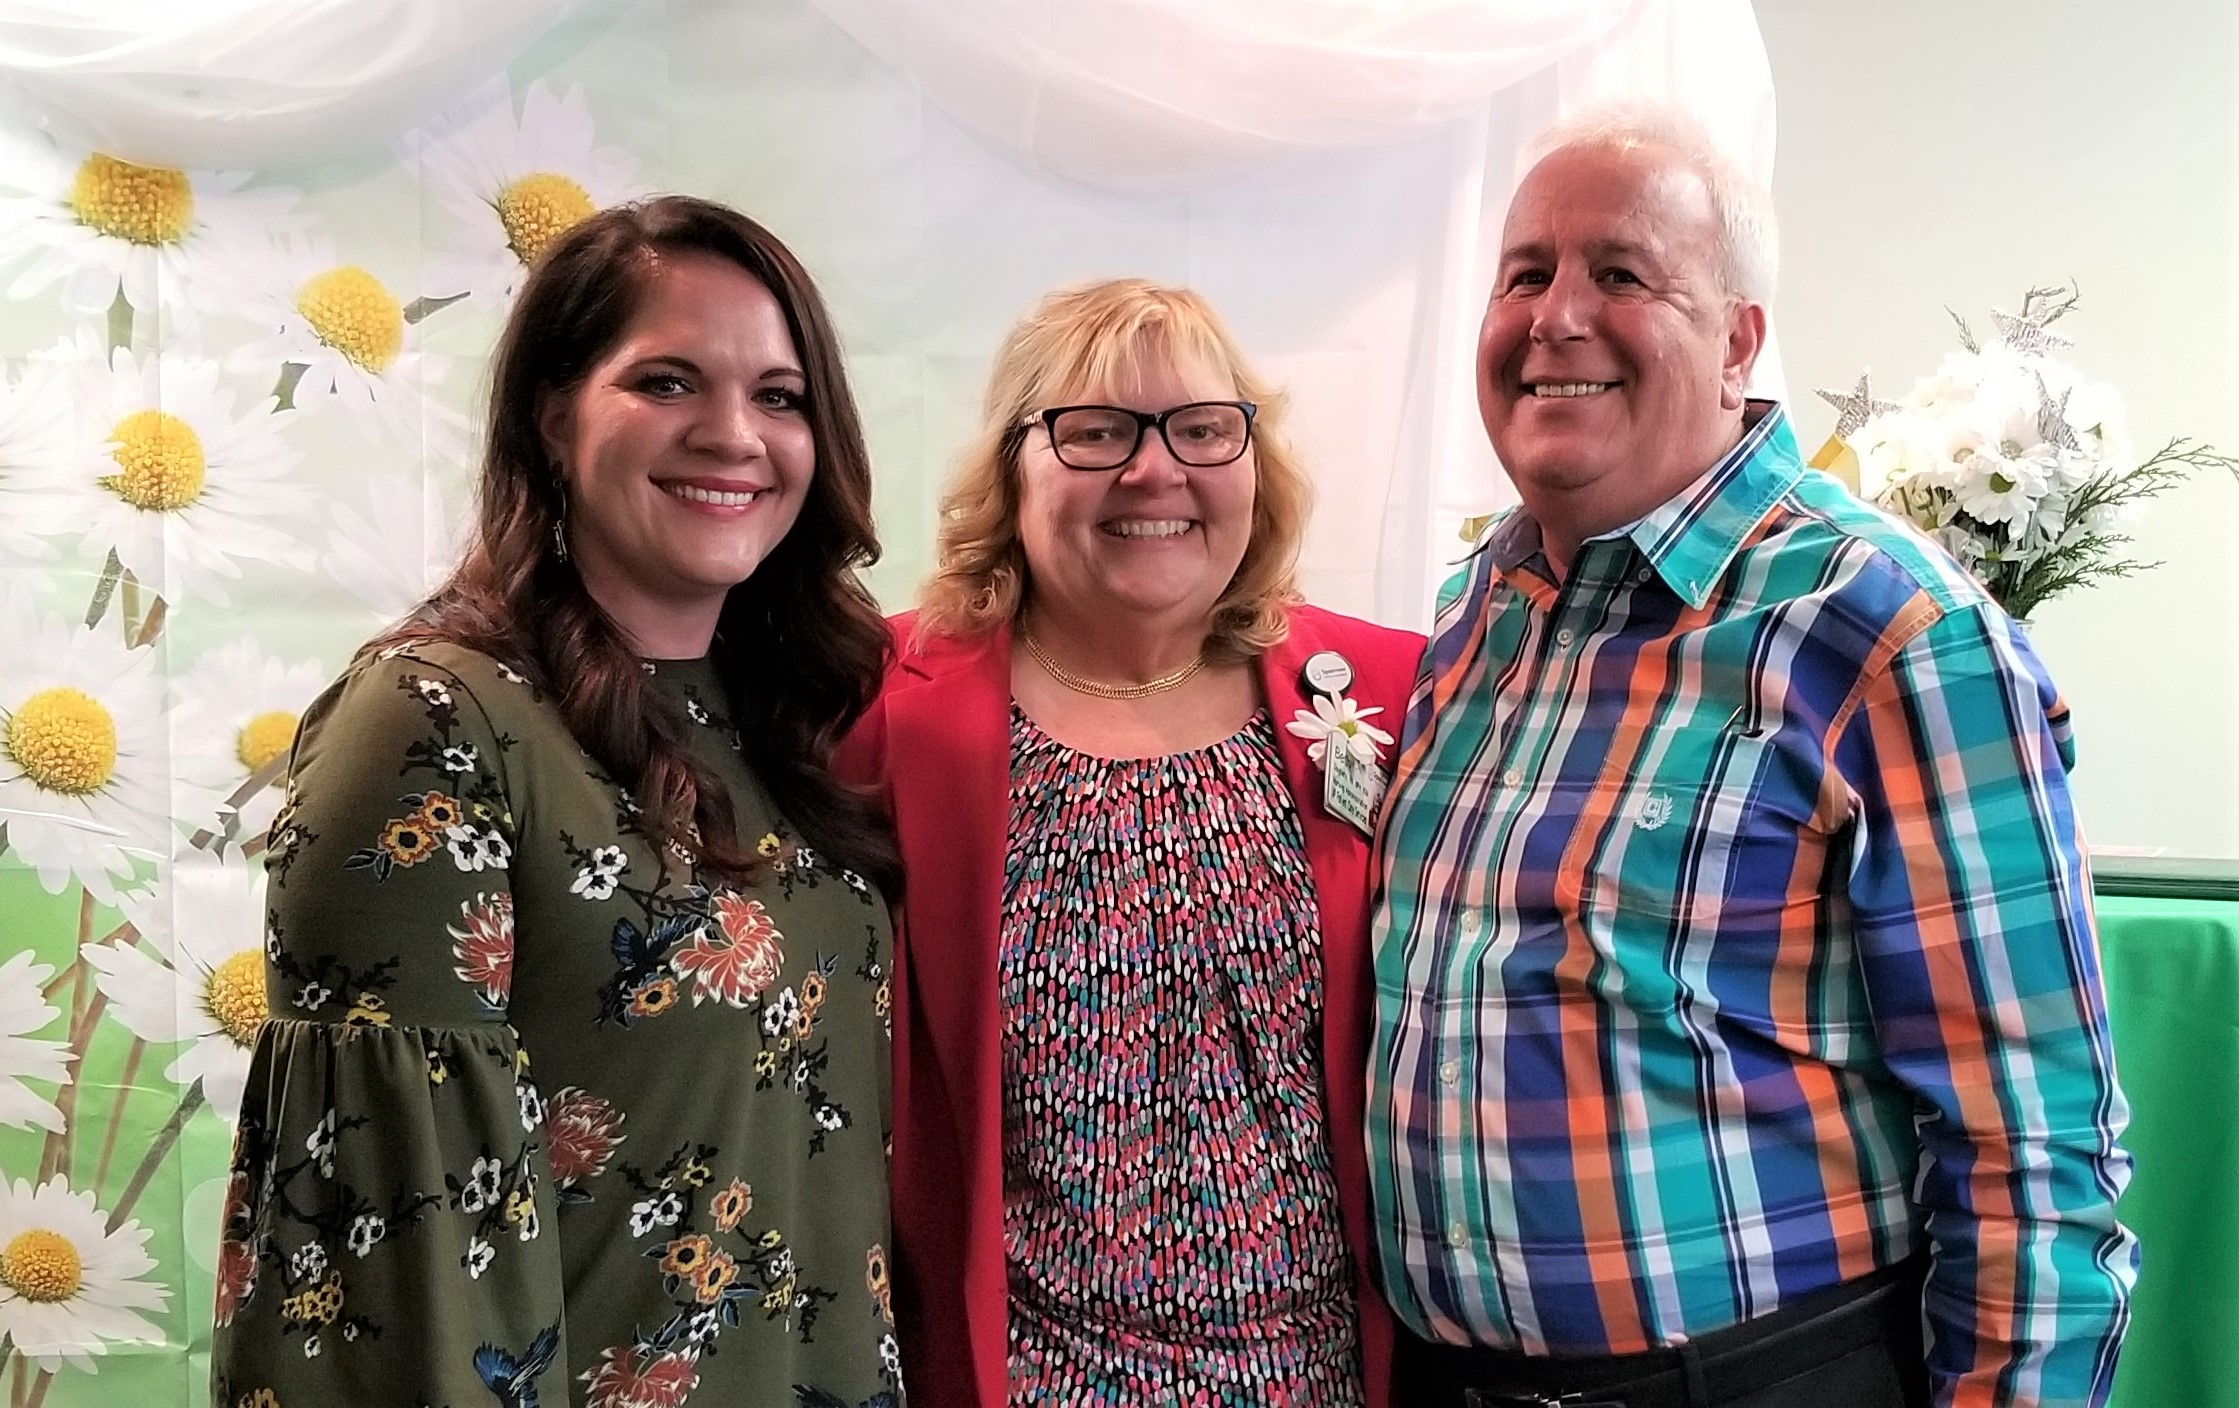 Beth Daugherty received a surprise visit from daughter, Molly Galloway, and husband, Roger, at the DAISY Lifetime Achievement Award ceremony.